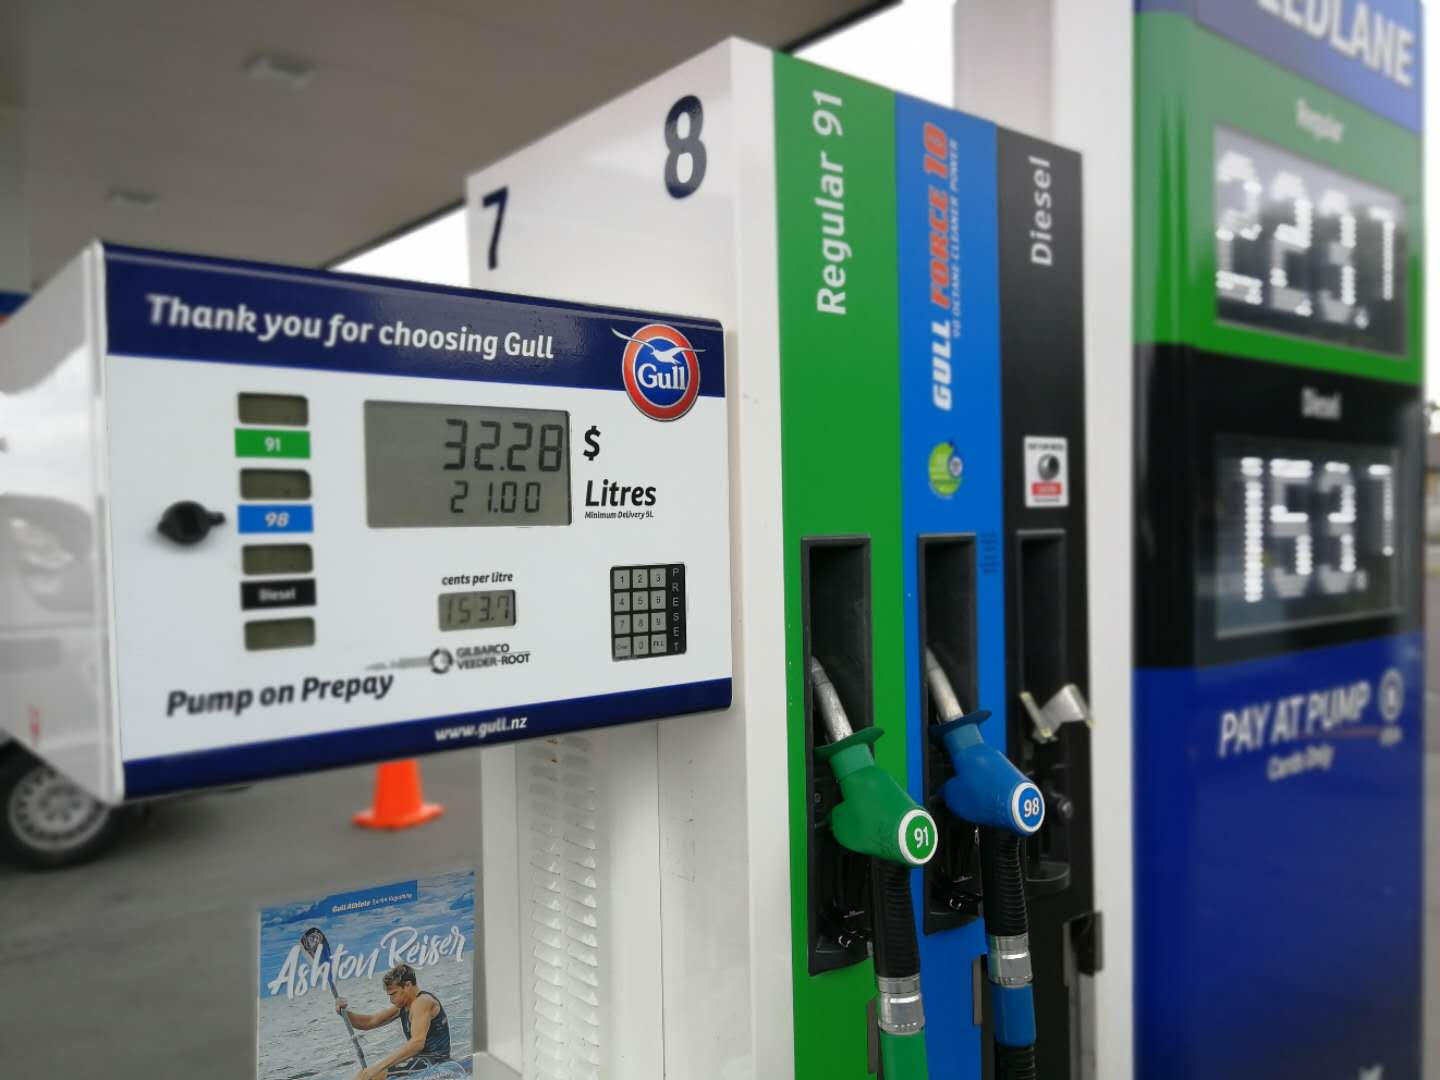 gull-petrol-station-pumps-with-display